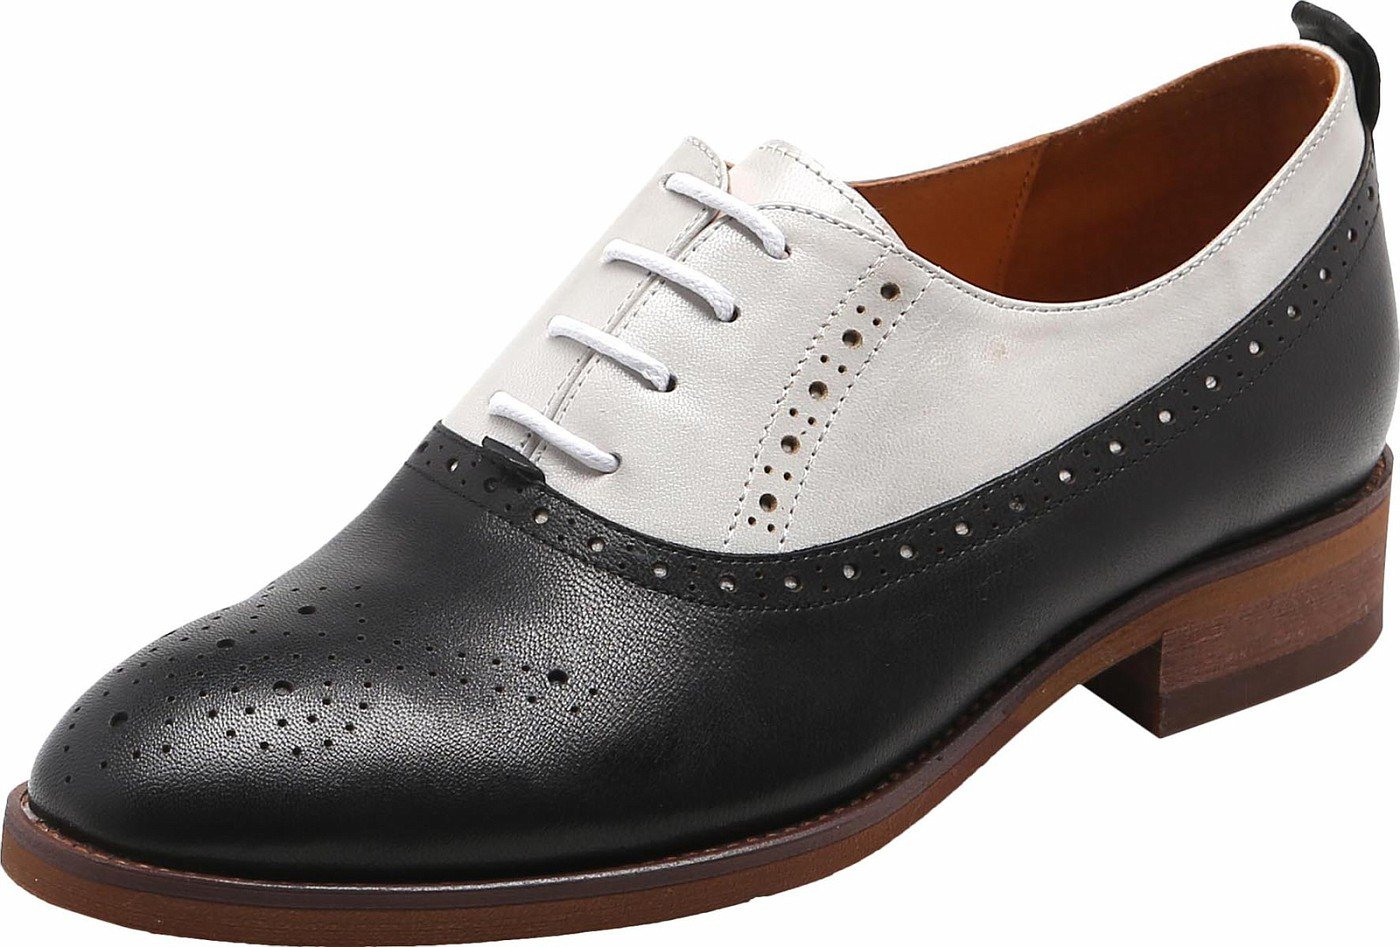 U-lite Womens Perforated Lace-up Round-Toe Brouge Shoes, Multicolor Spring Vintage Oxfords White Black9